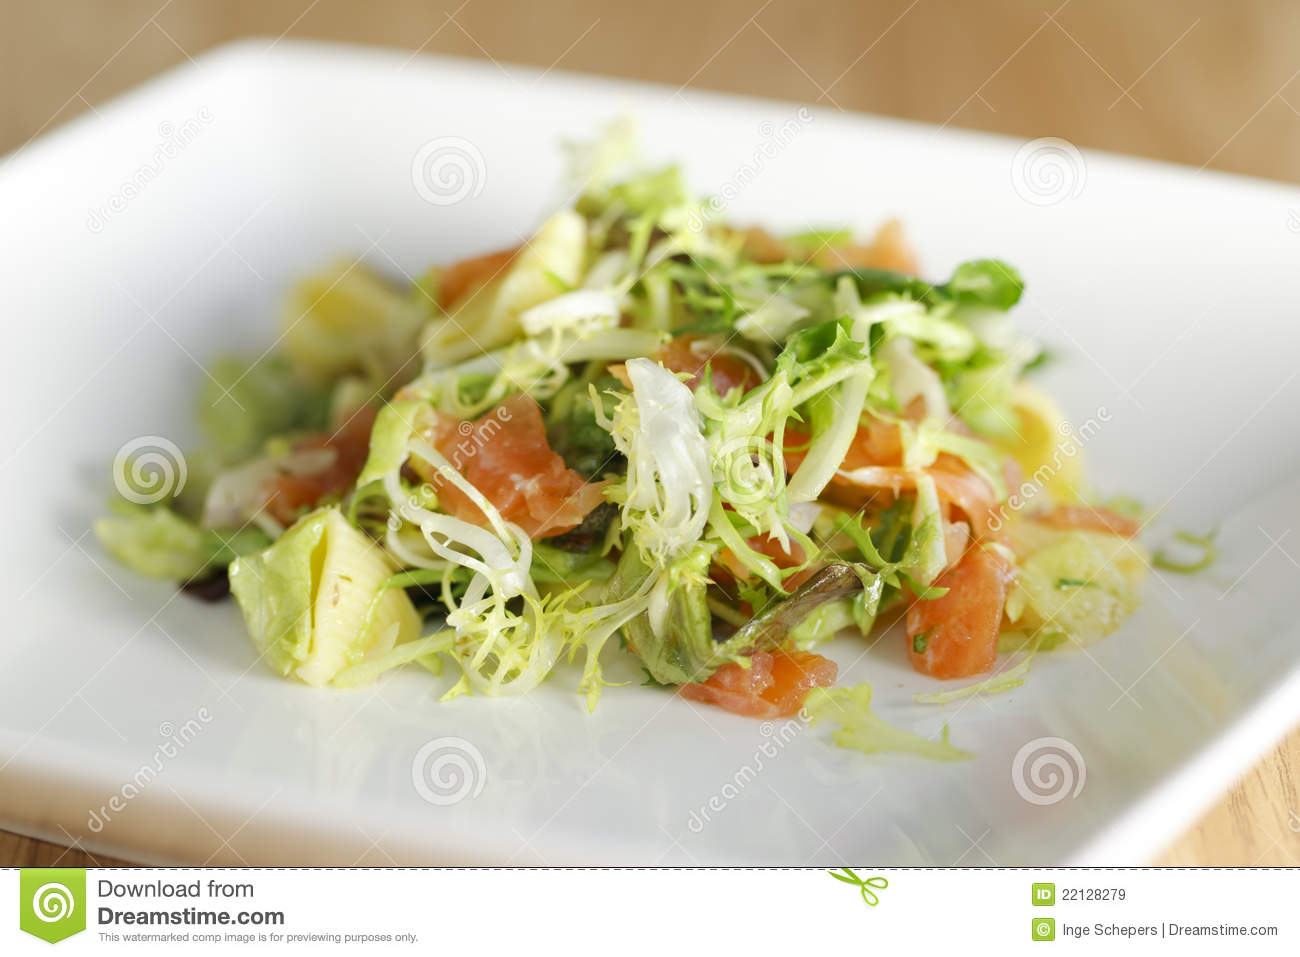 Salmon Pasta Salad Royalty Free Stock Images - Image: 22128279